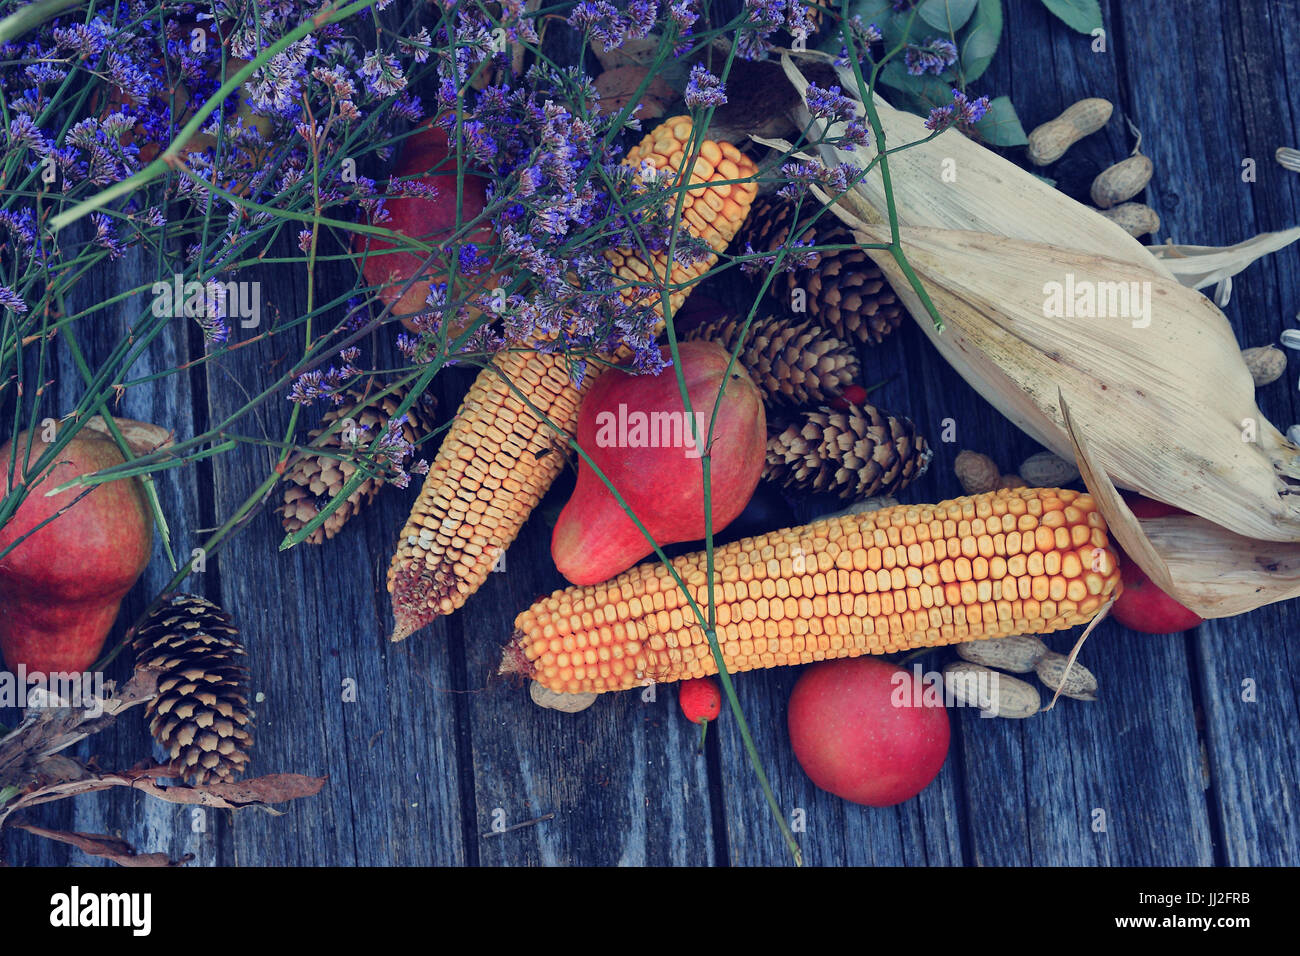 Fruits and vegetables on wooden background - Stock Image